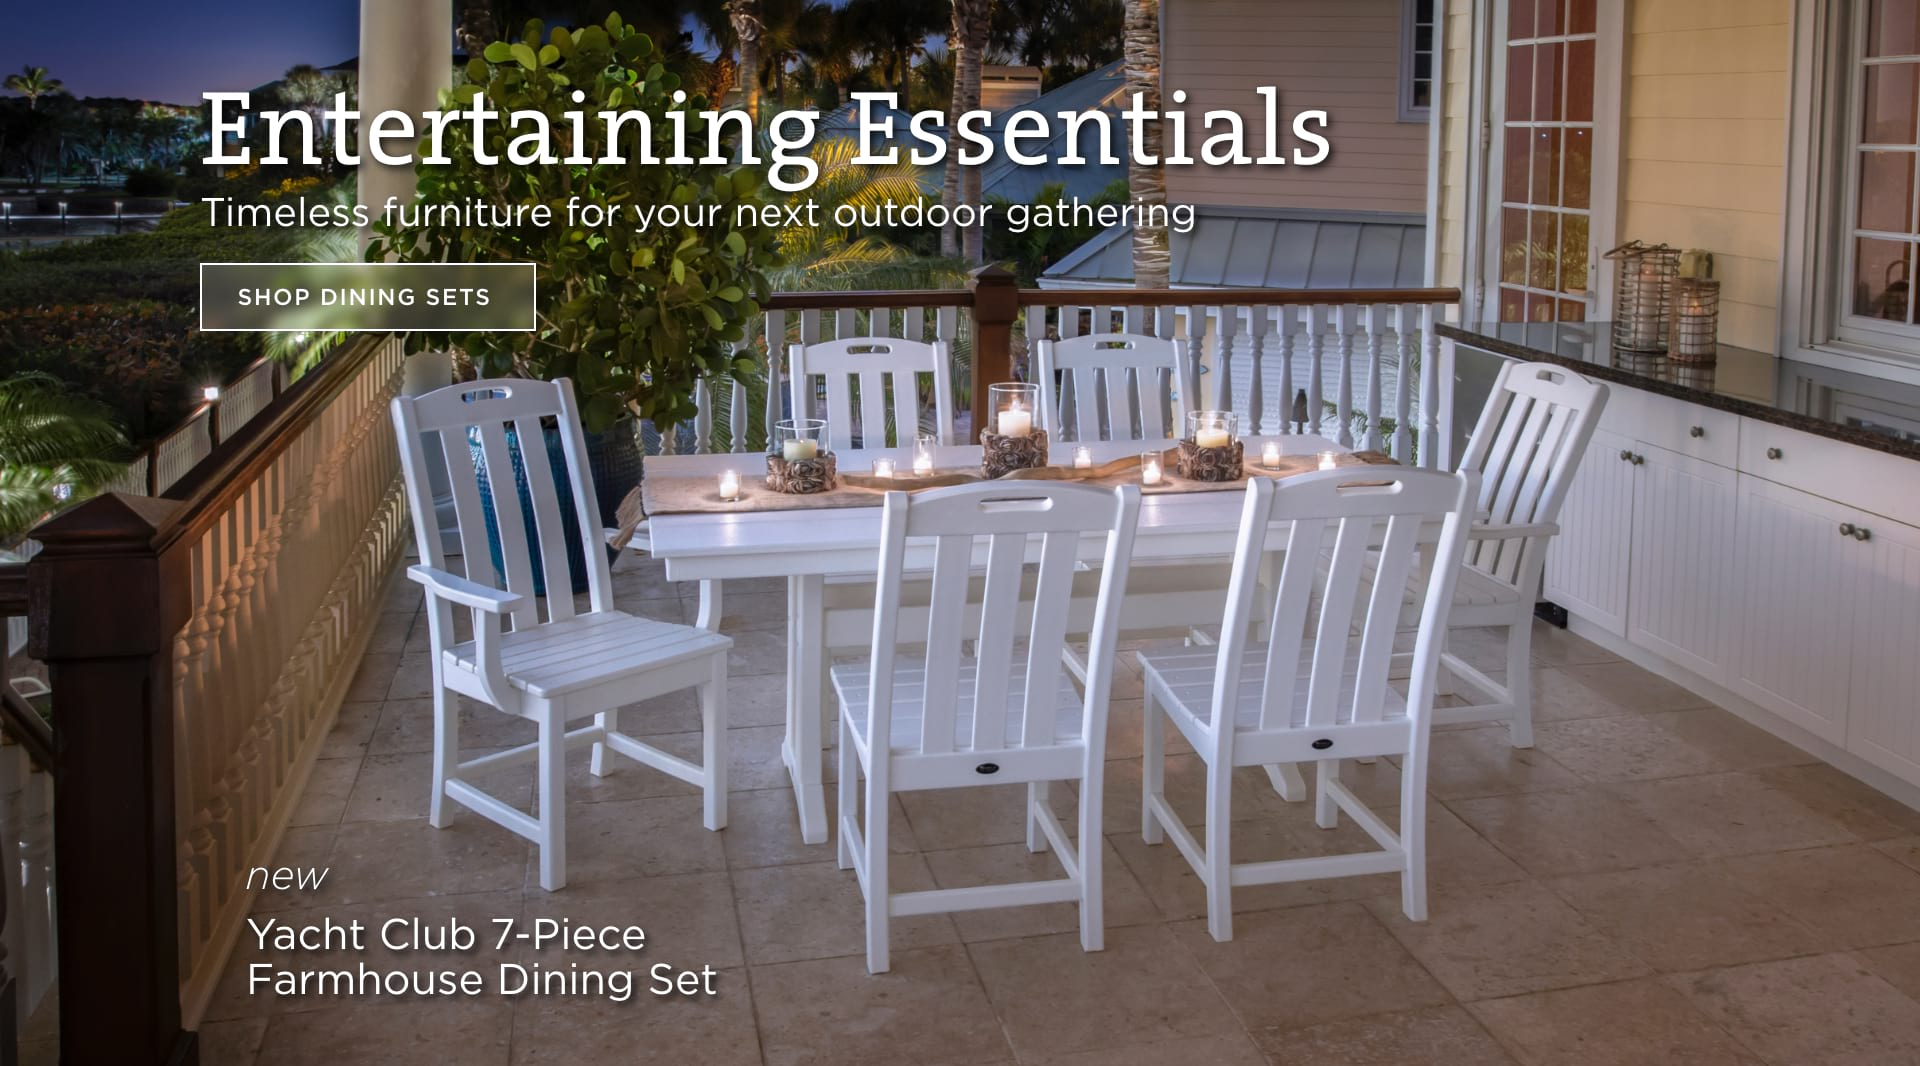 Entertaining Essentials - Shop Dining Sets